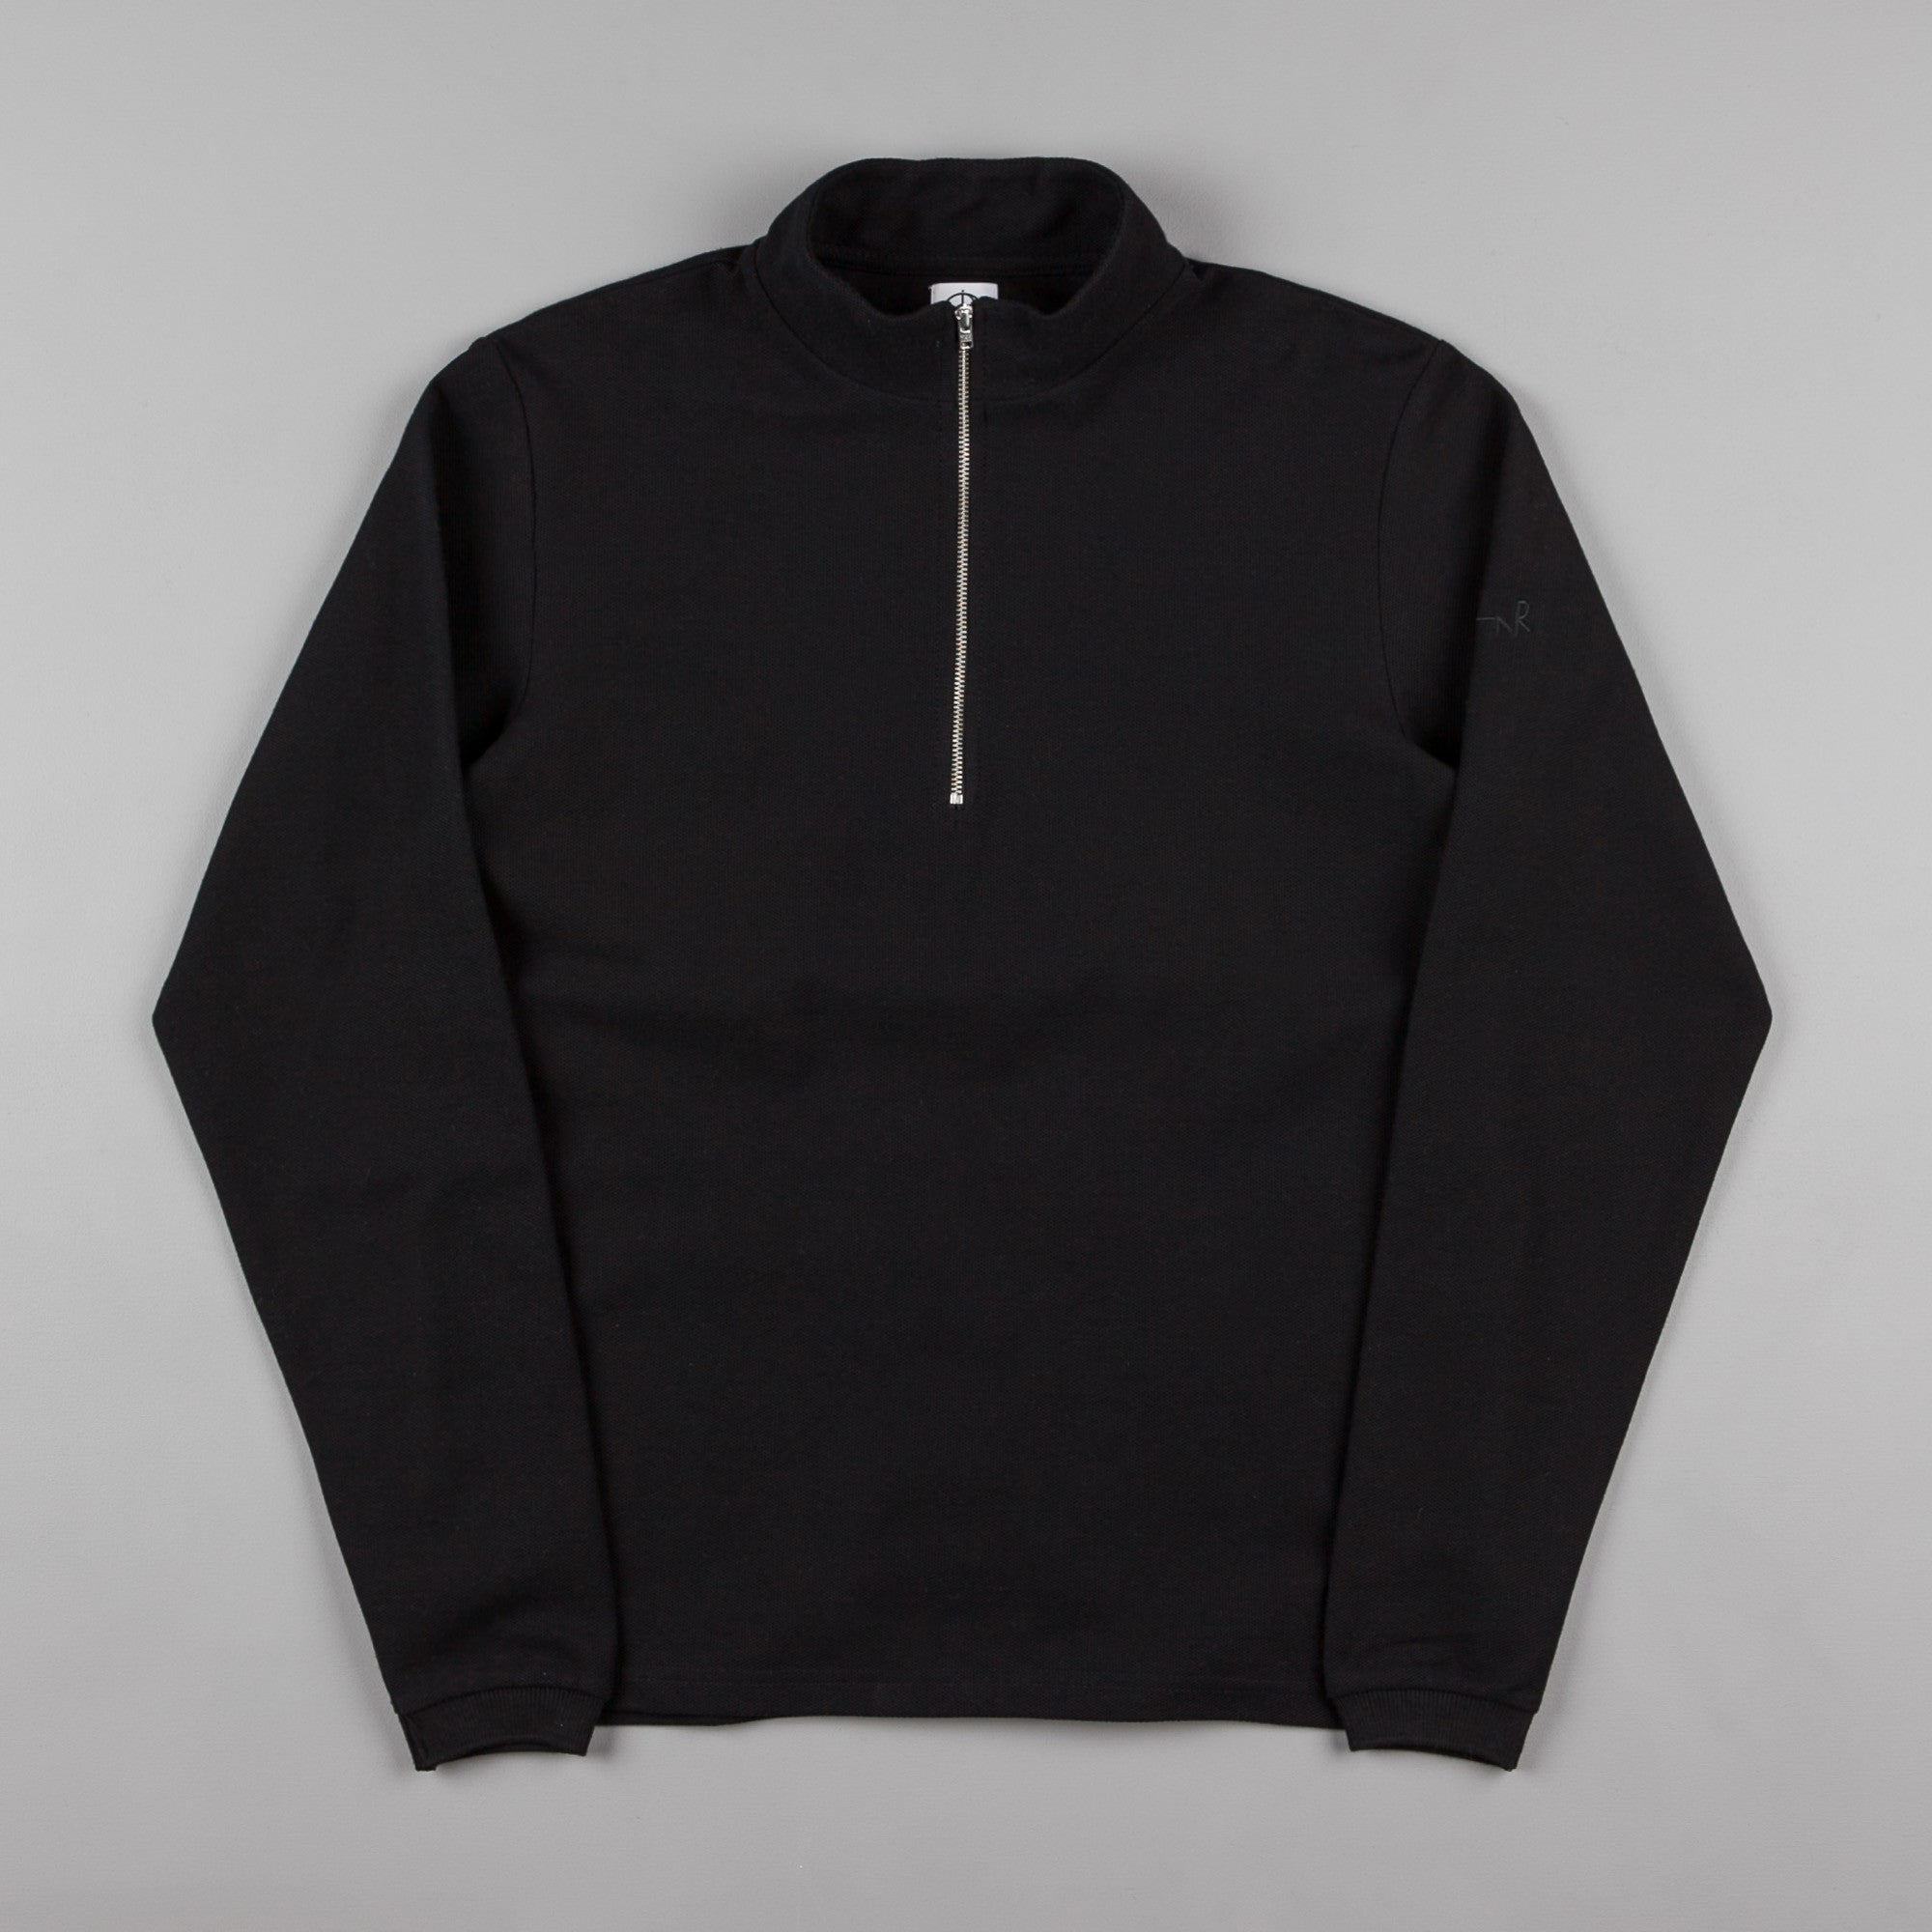 Polar Pique Zip Neck Shirt - Black